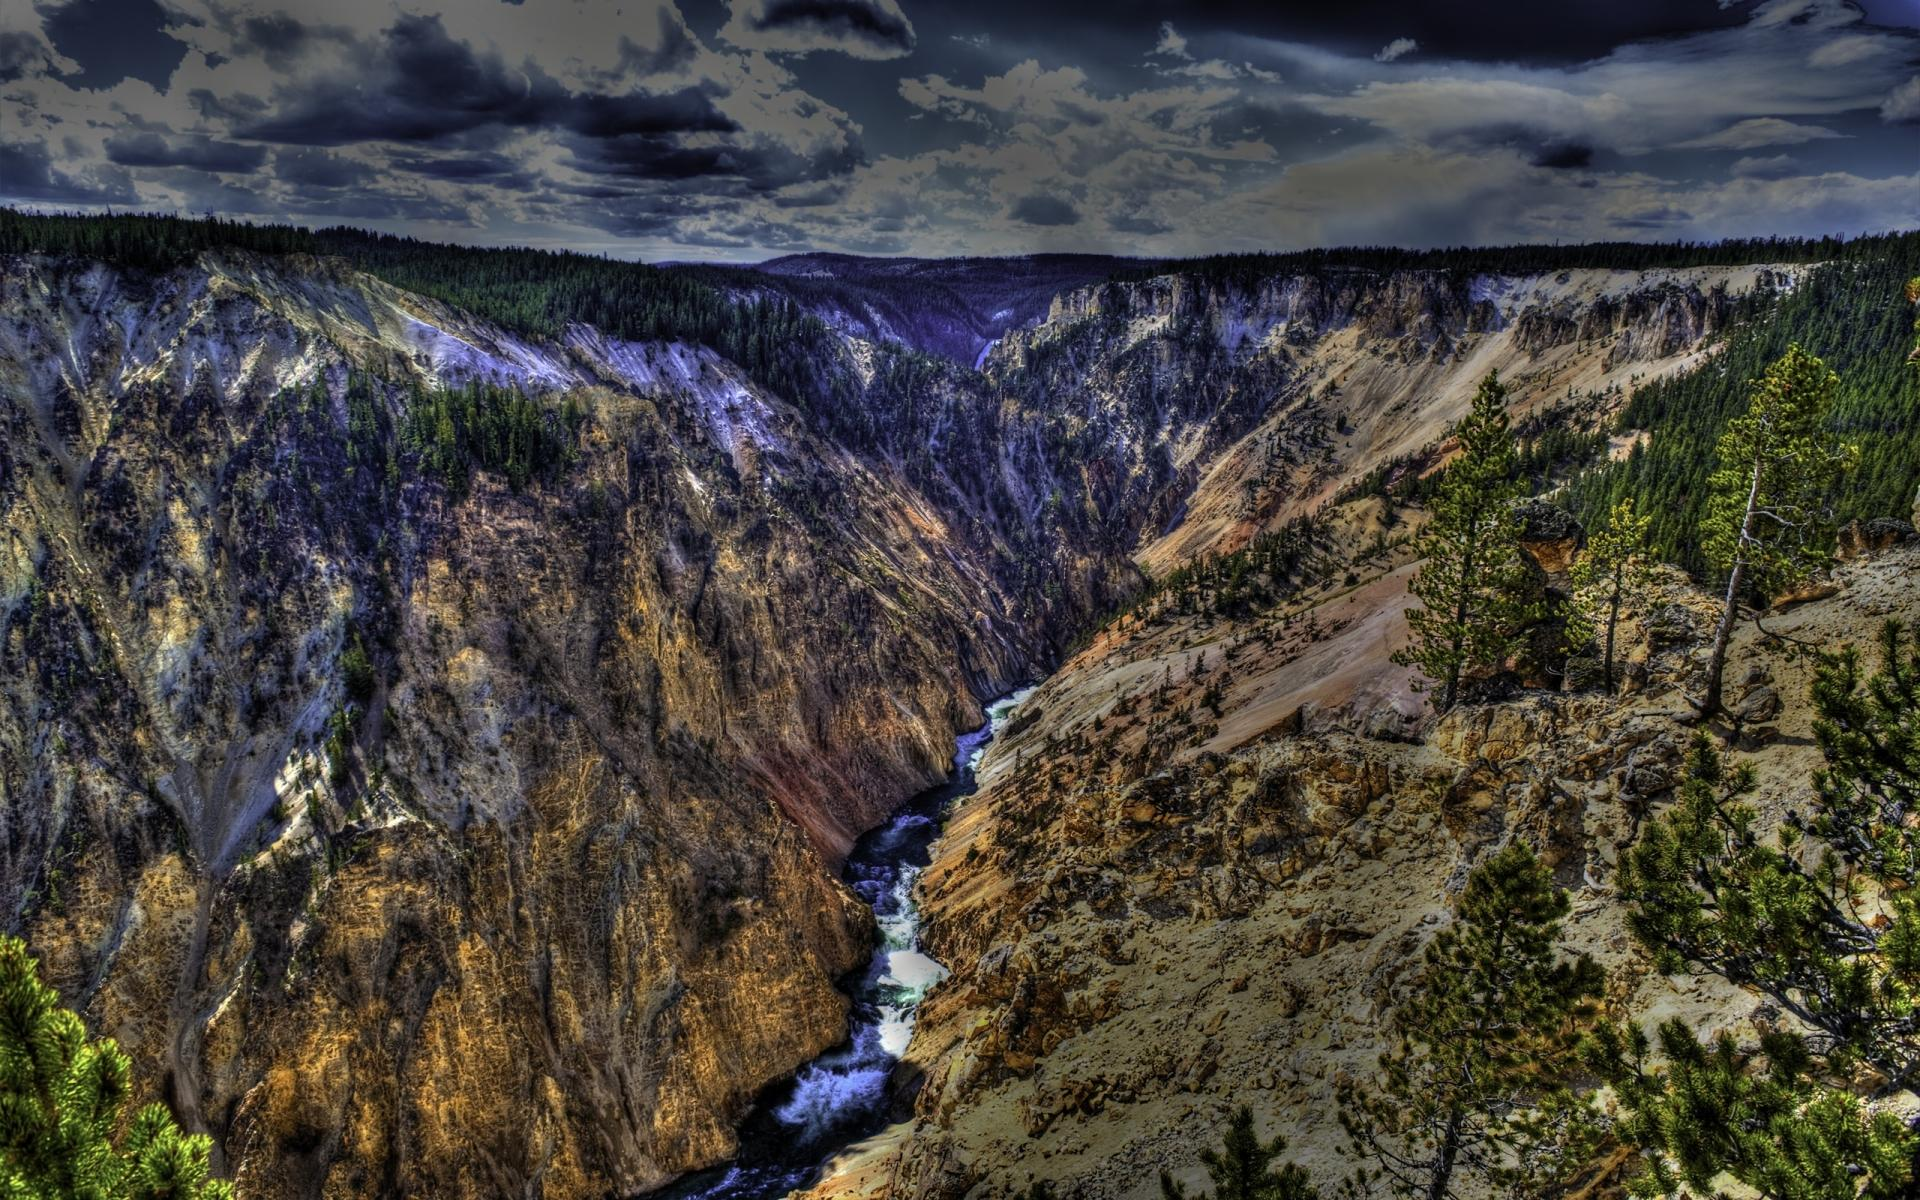 Yellowstone National Park at 1024 x 768 size wallpapers HD quality